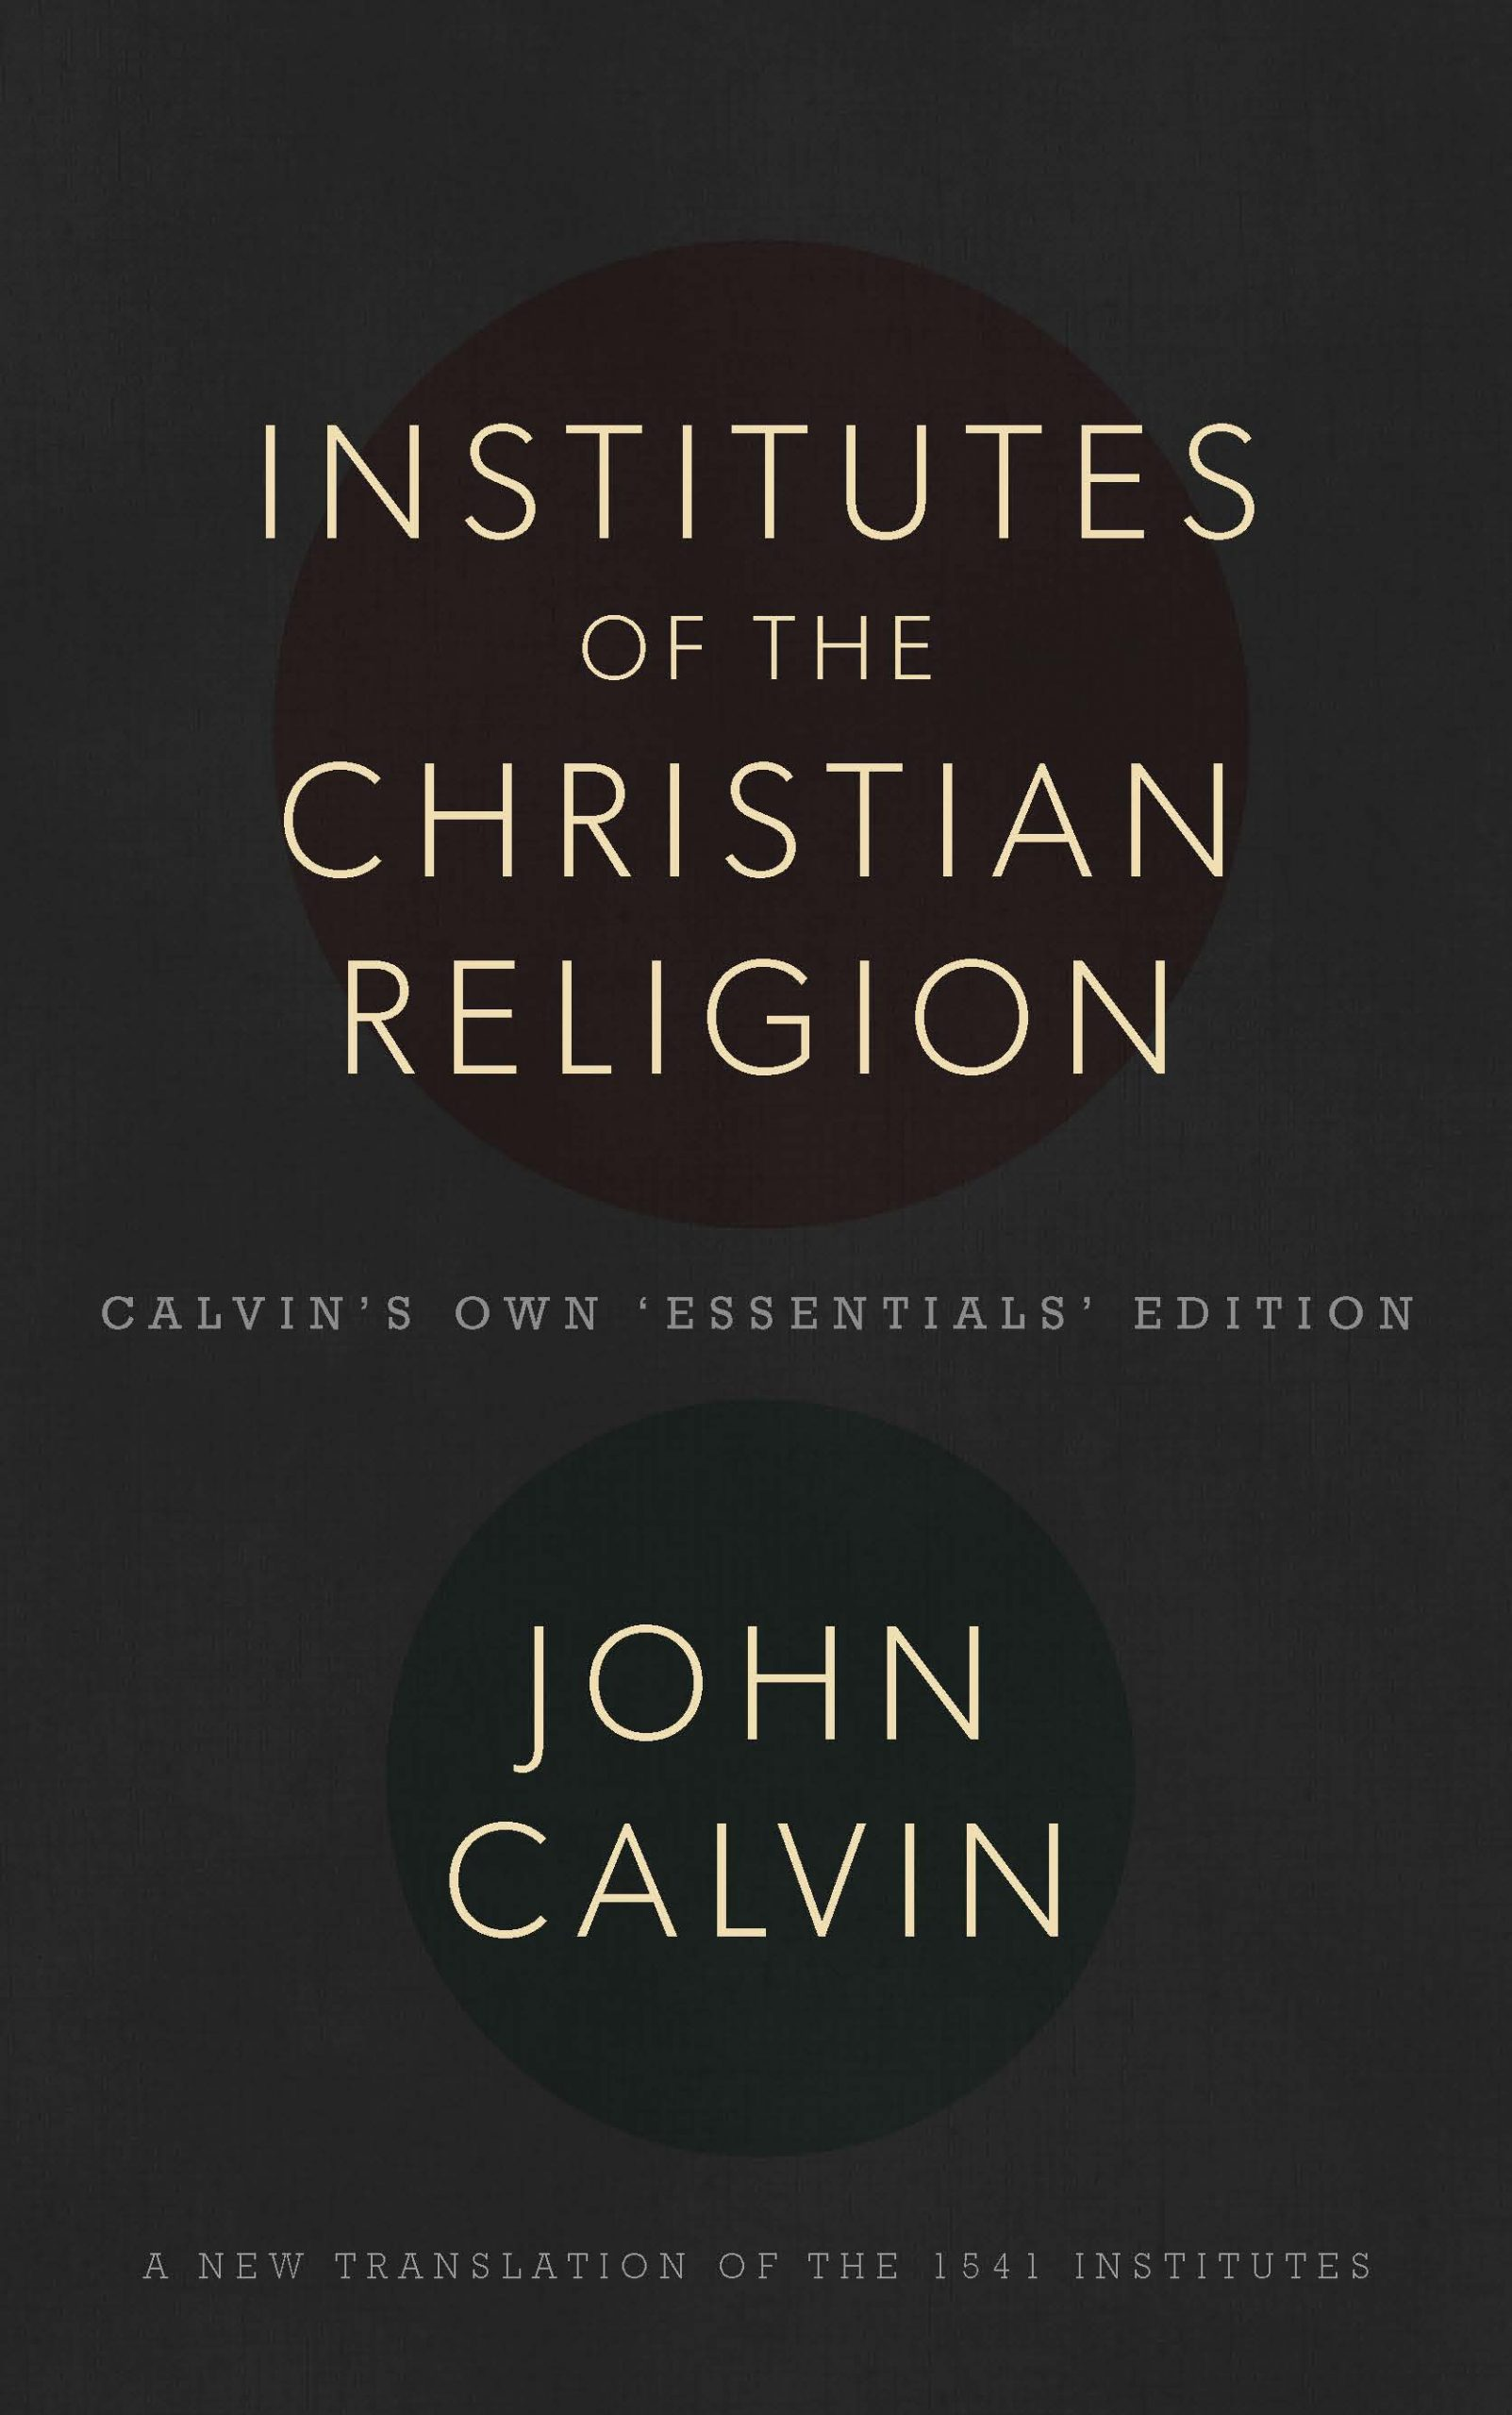 Cover image for John Calvin's 'Institutes of the Christian Religion'